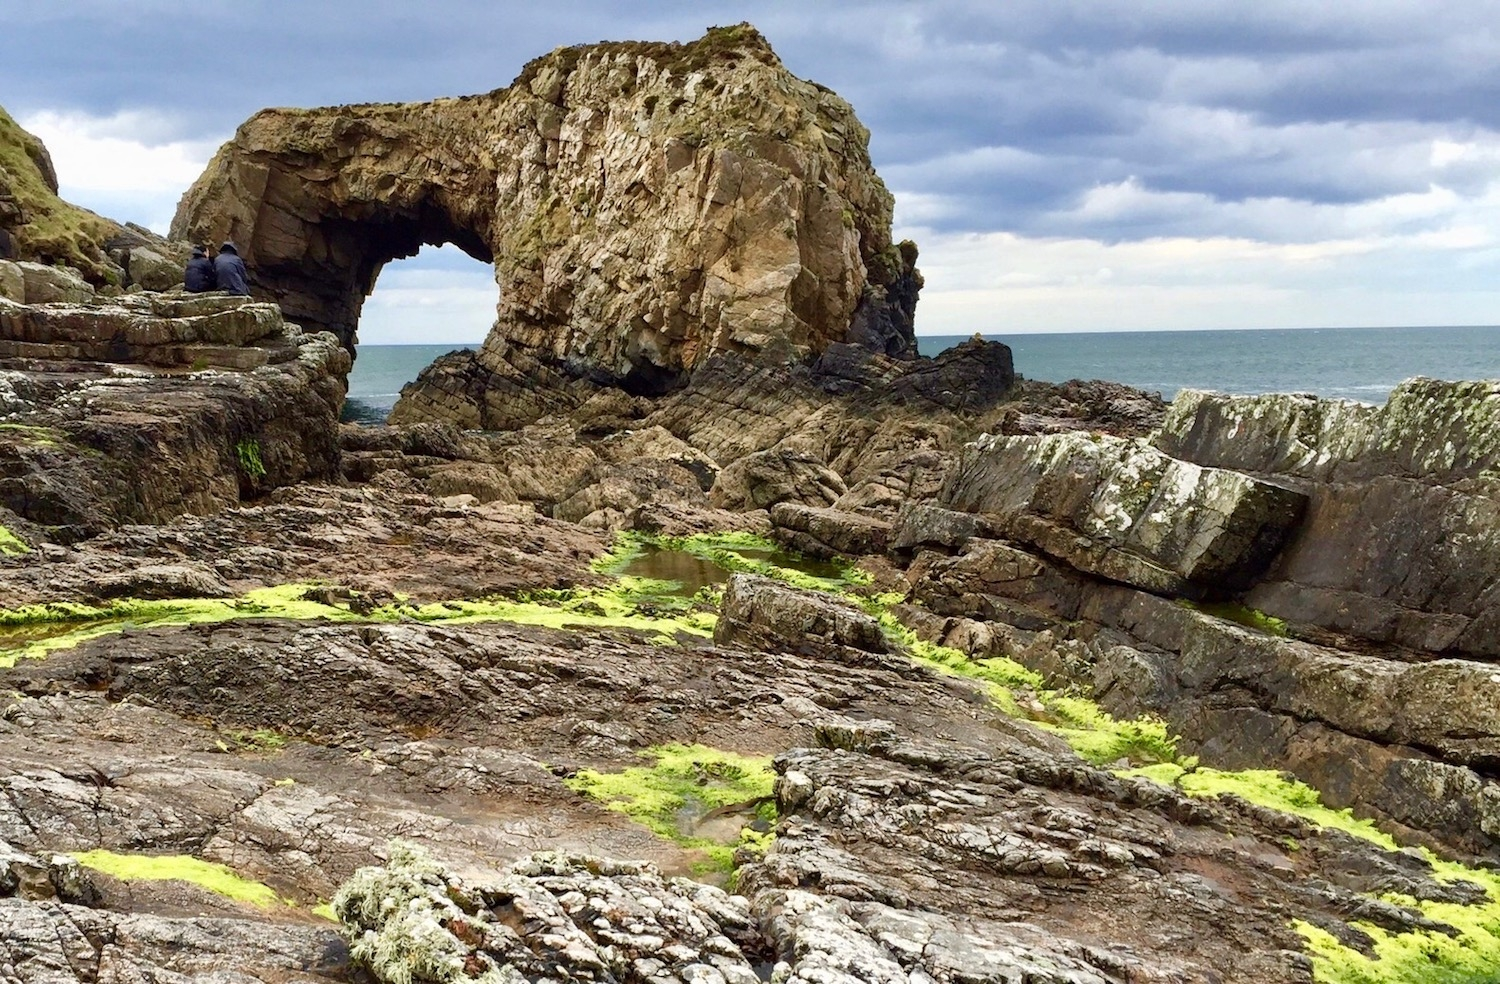 The Great Pollet Sea Arch